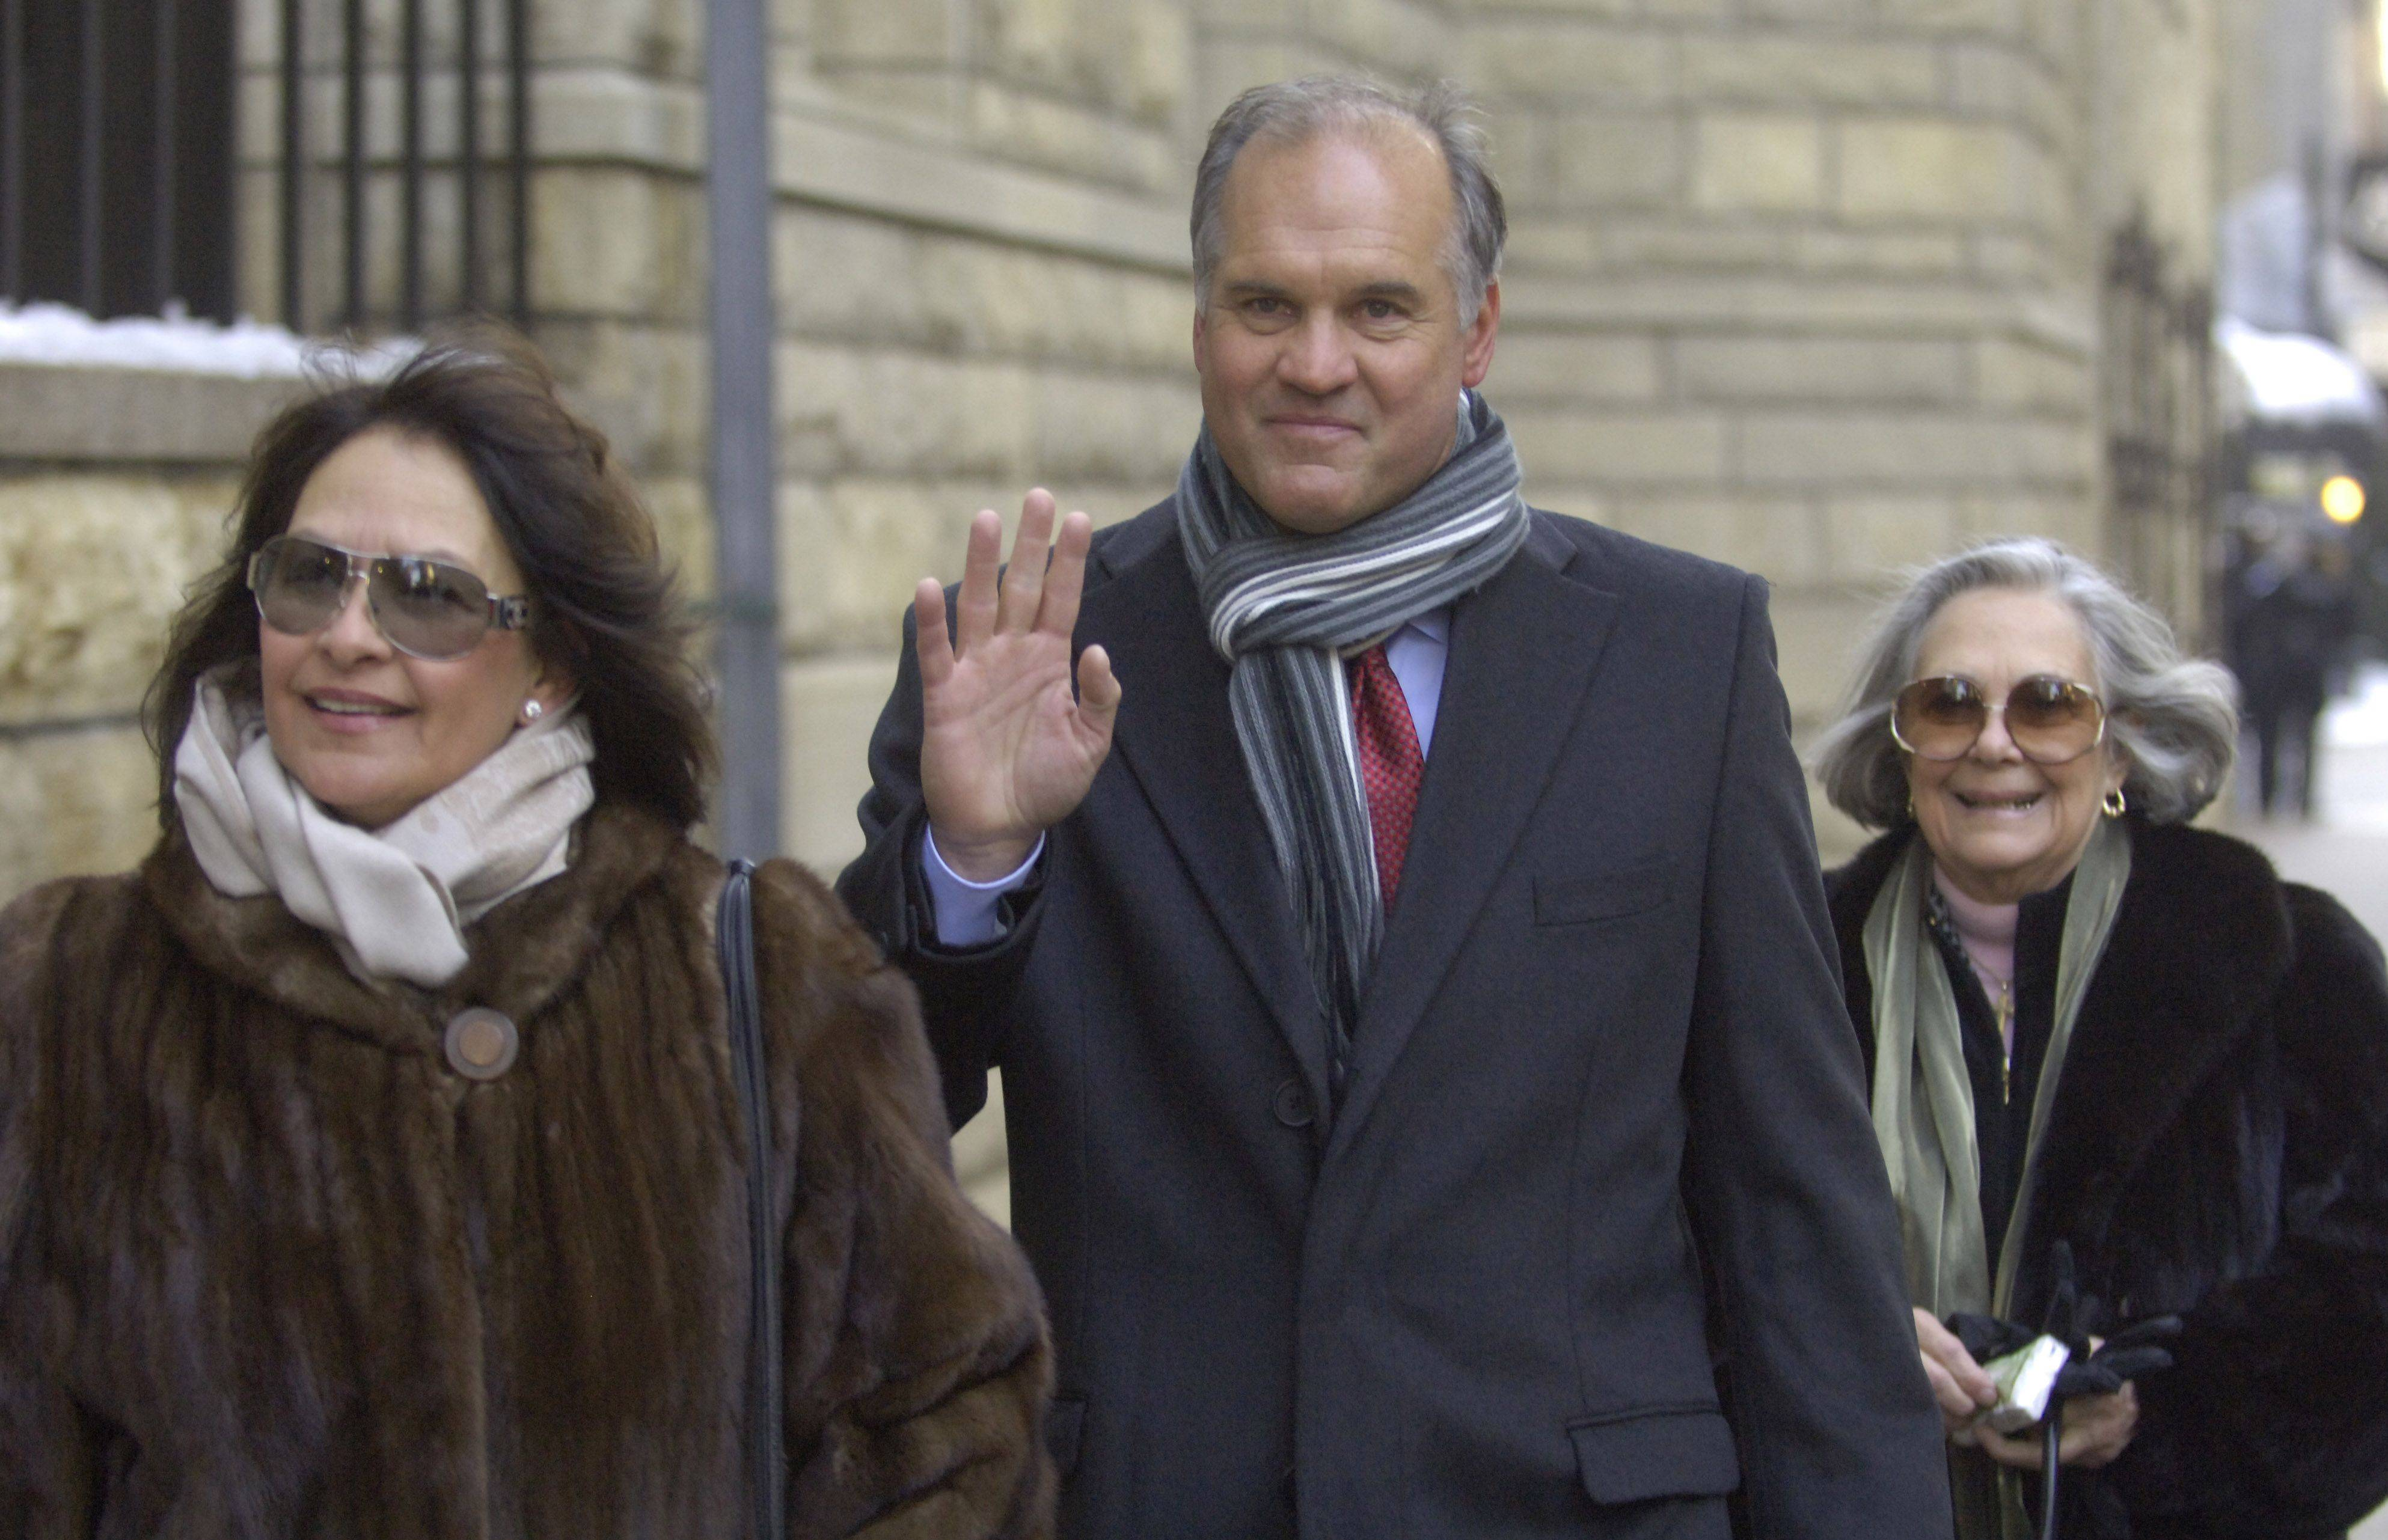 Cubs Hall of Famer Ryne Sandberg arrives with his wife, Margaret, left, and Dutchie Caray before Ron Santo's funeral.